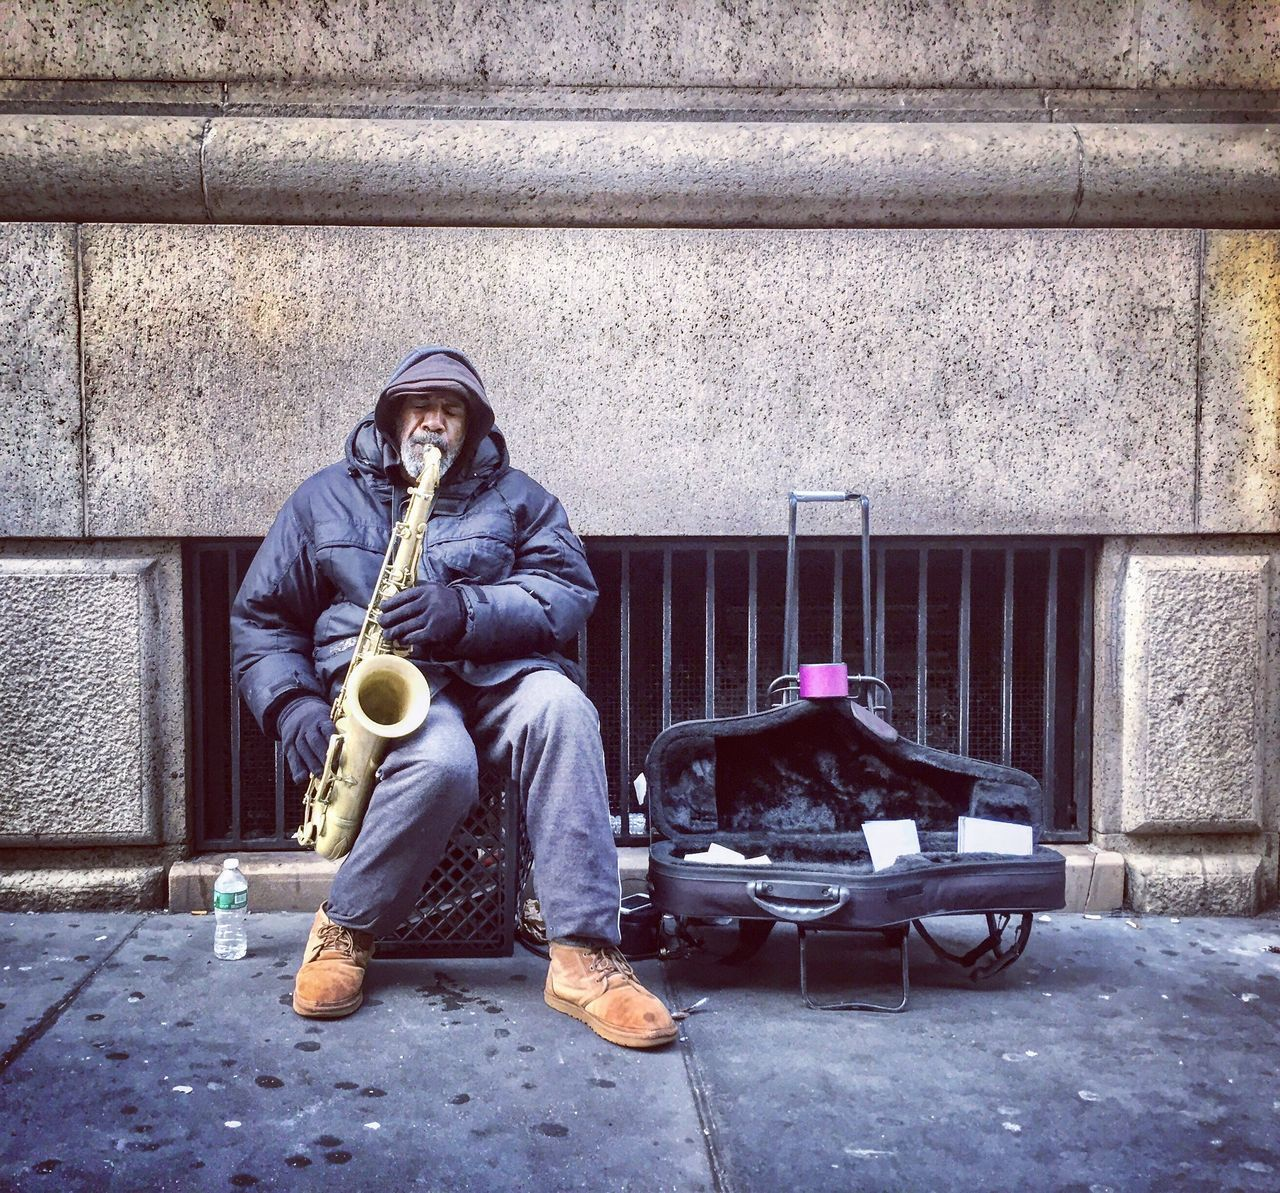 Saxophonist 🎷 One Person Saxophonist Saxophoneplayer Saxophone Player Streetphotography Street Photography Streetsaxophonist Streetphoto_color Newyorkcity Newyorklife Blackman Musician Streetmusician Saxophone Ilovesax Ilovesaxophone One Man Show OneMan Playing Music Playingsaxophone Playing Outside